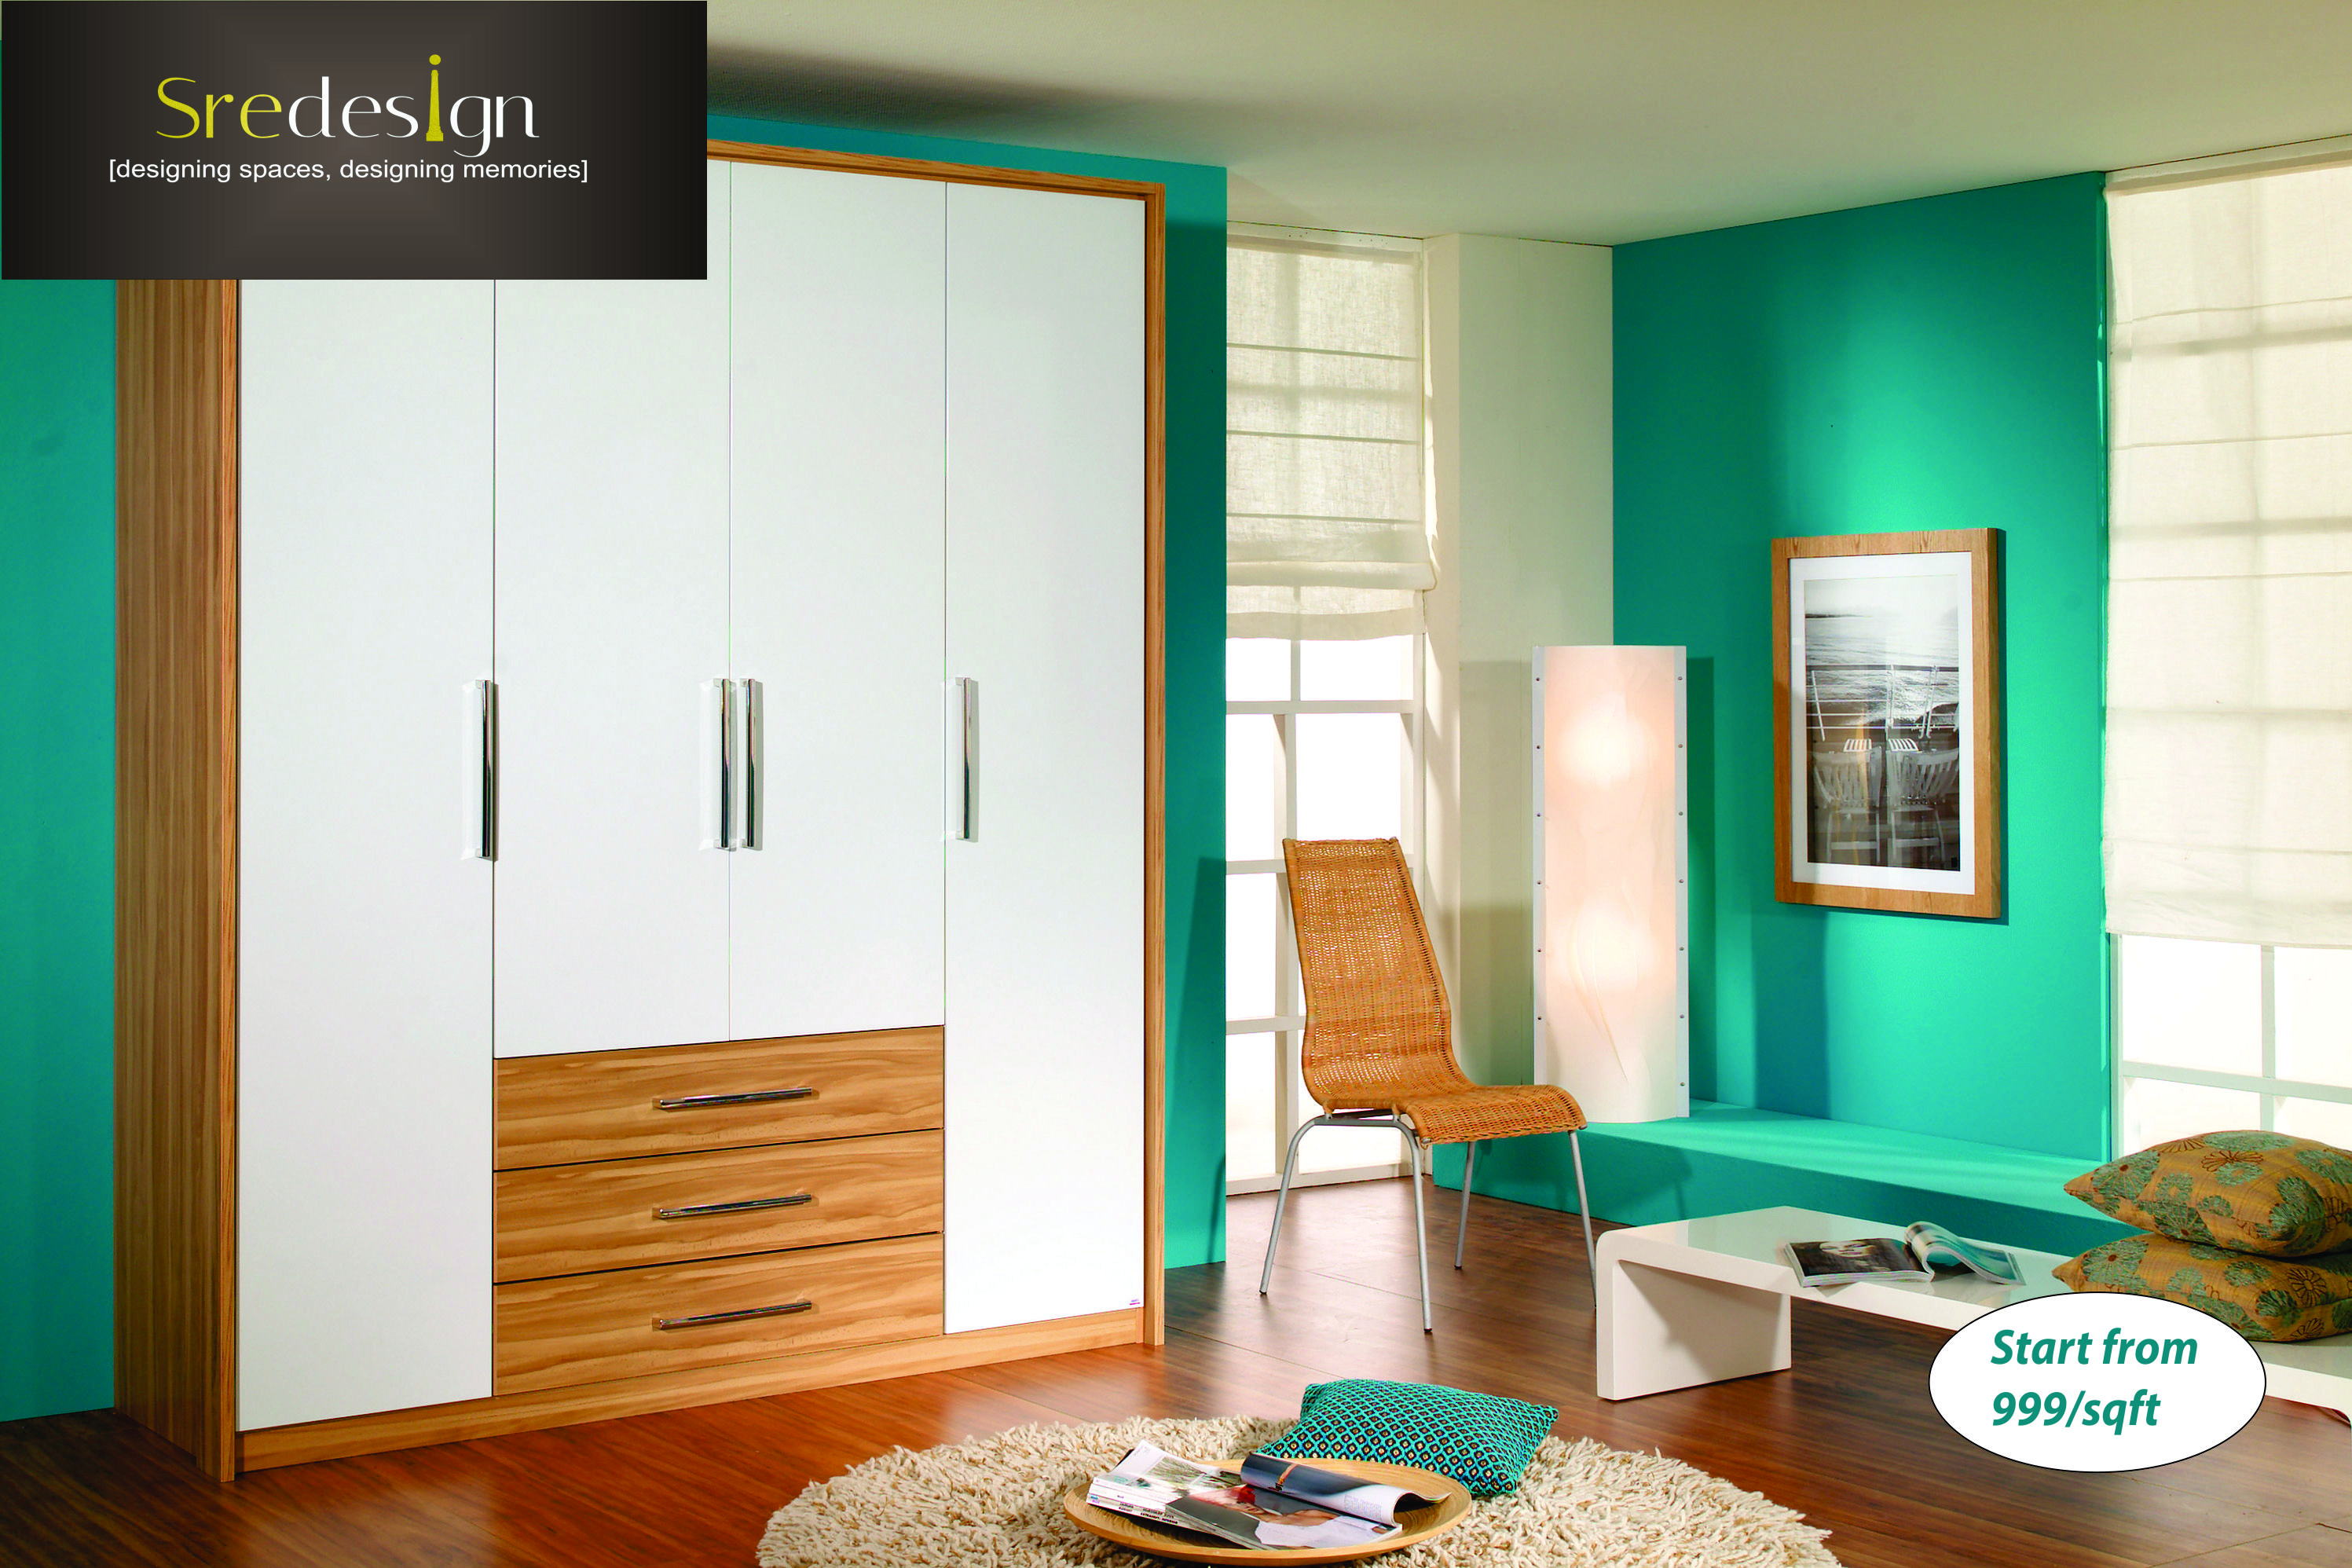 Pin by SRE DESIGN on wardrobes Desings ideas Wall paint